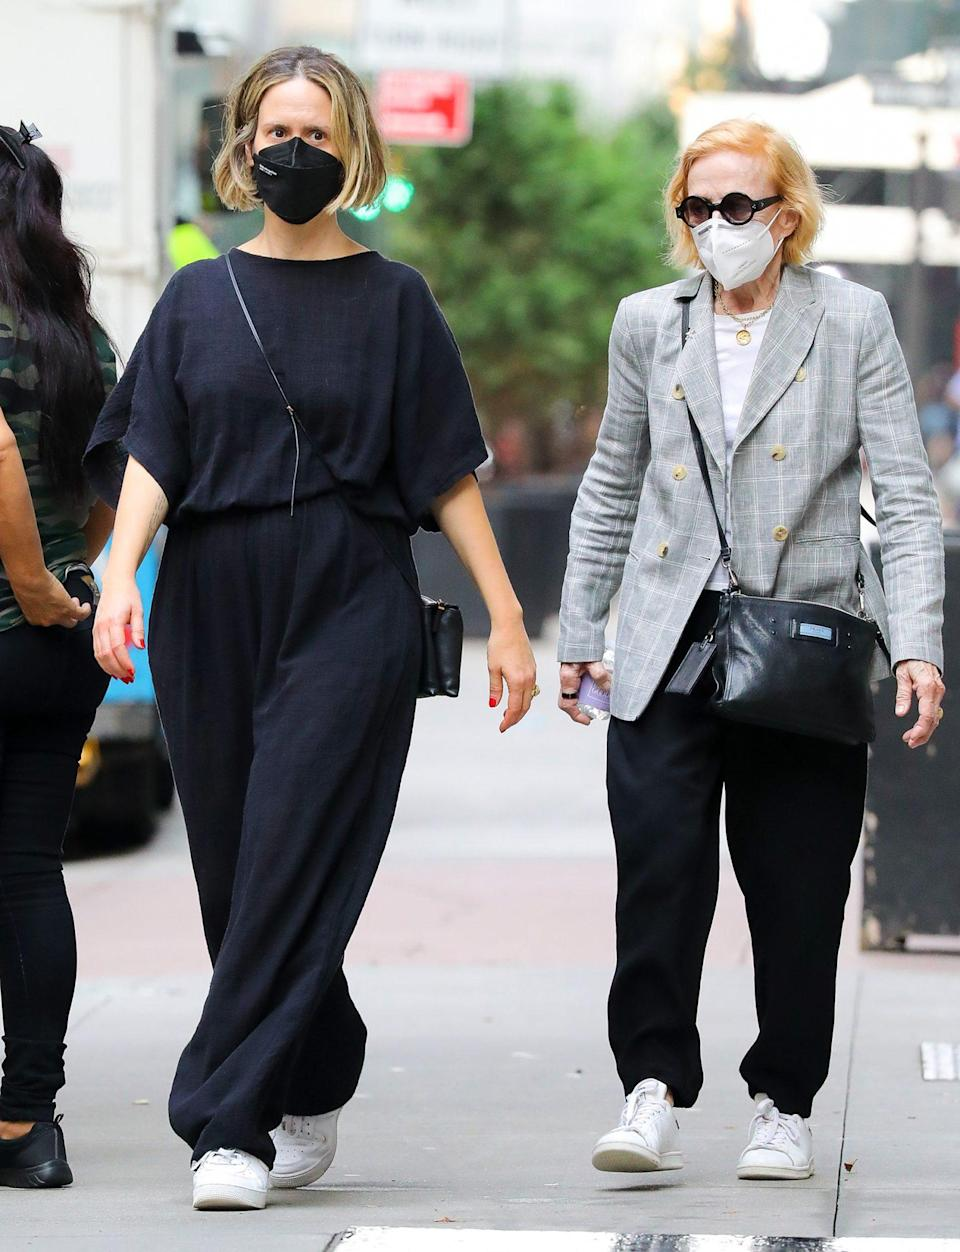 <p>Sarah Paulson and Holland Taylor walk around N.Y.C. on Sept. 12 after having lunch at Bergdorf Goodman.</p>